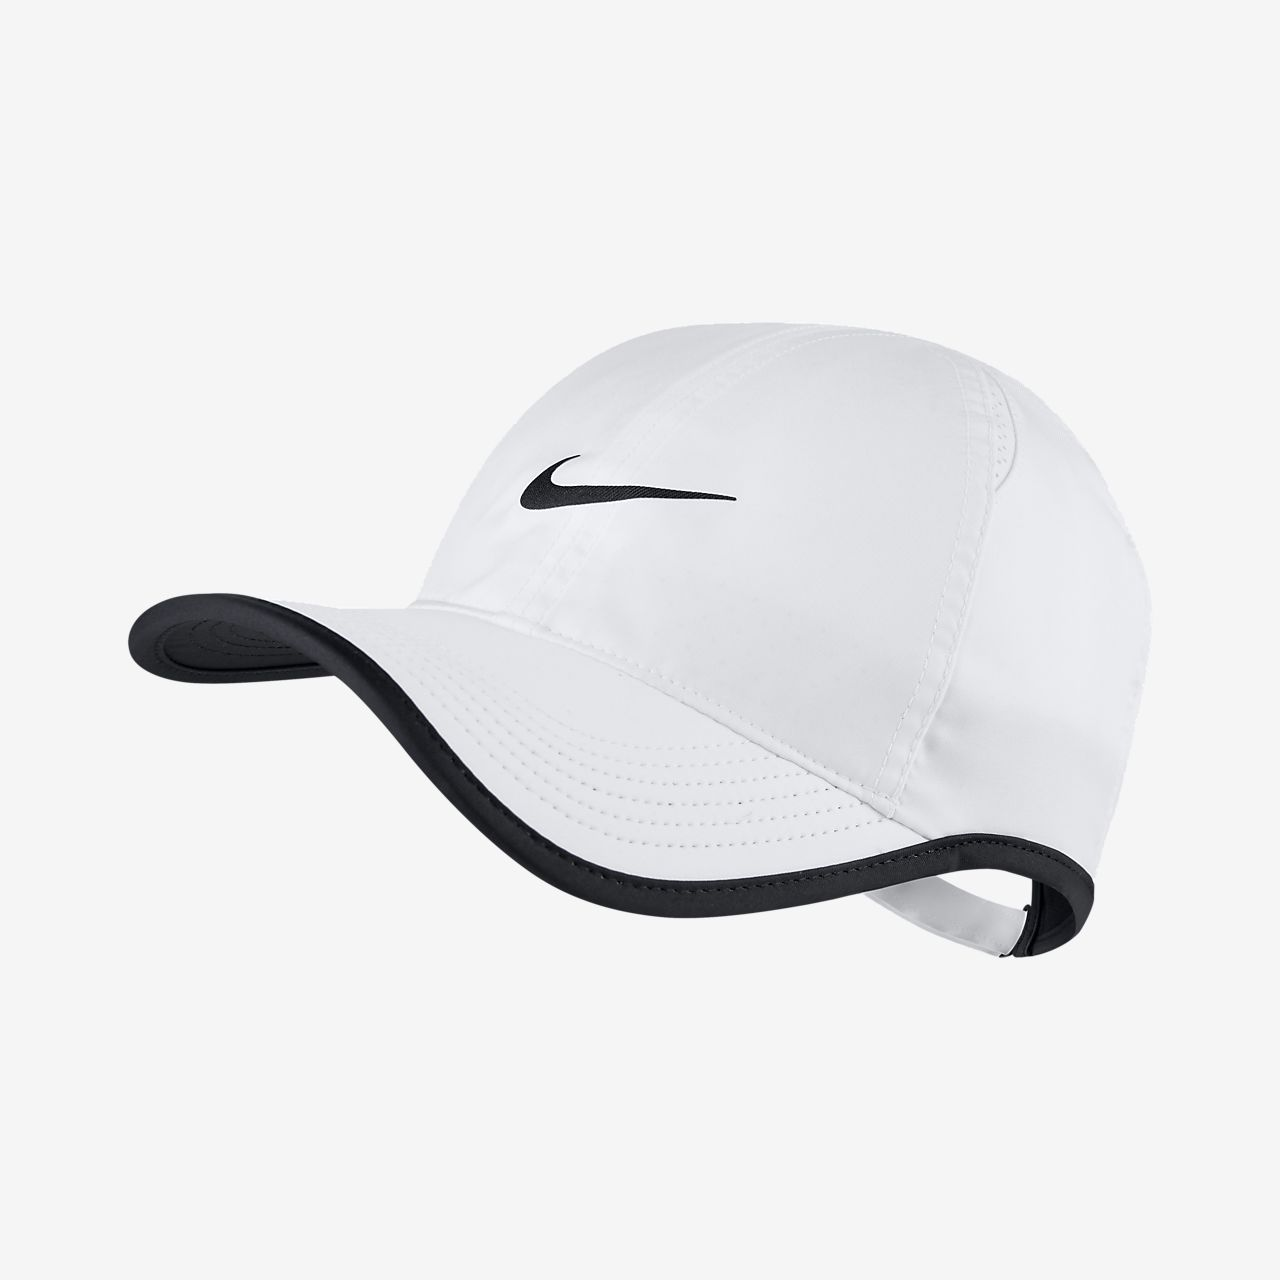 Gorro ajustable de tenis NikeCourt Featherlight. Nike.com CL ee4592b080f